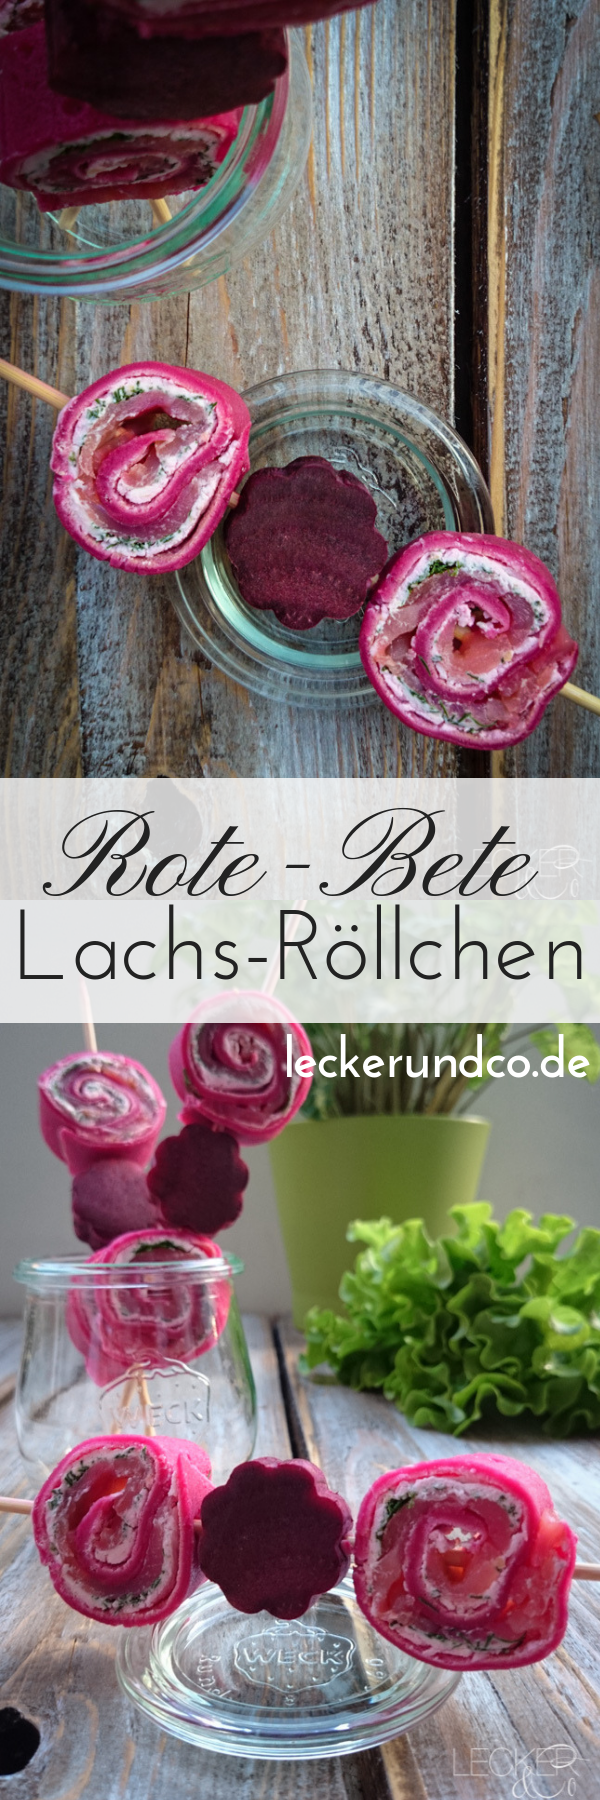 Photo of Beetroot salmon rolls in salad packs for a picnic LECKER & Co | Food blog from Nuremberg